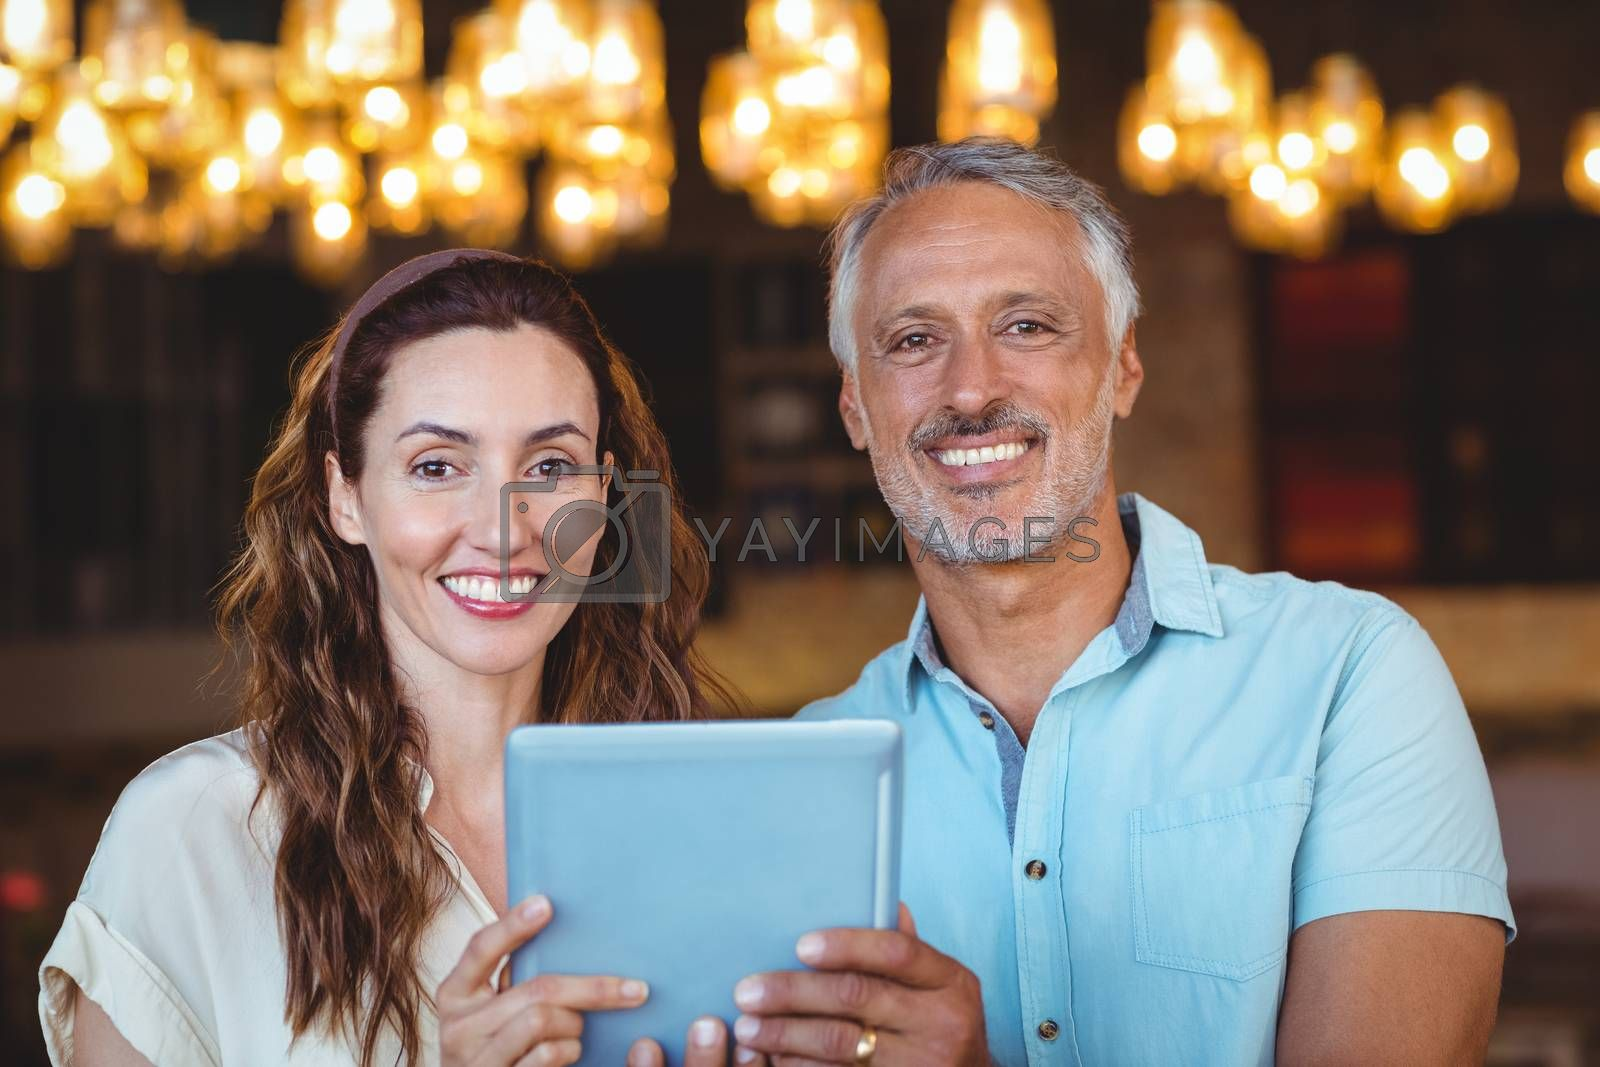 Royalty free image of Happy couple smiling at camera and using tablet by Wavebreakmedia